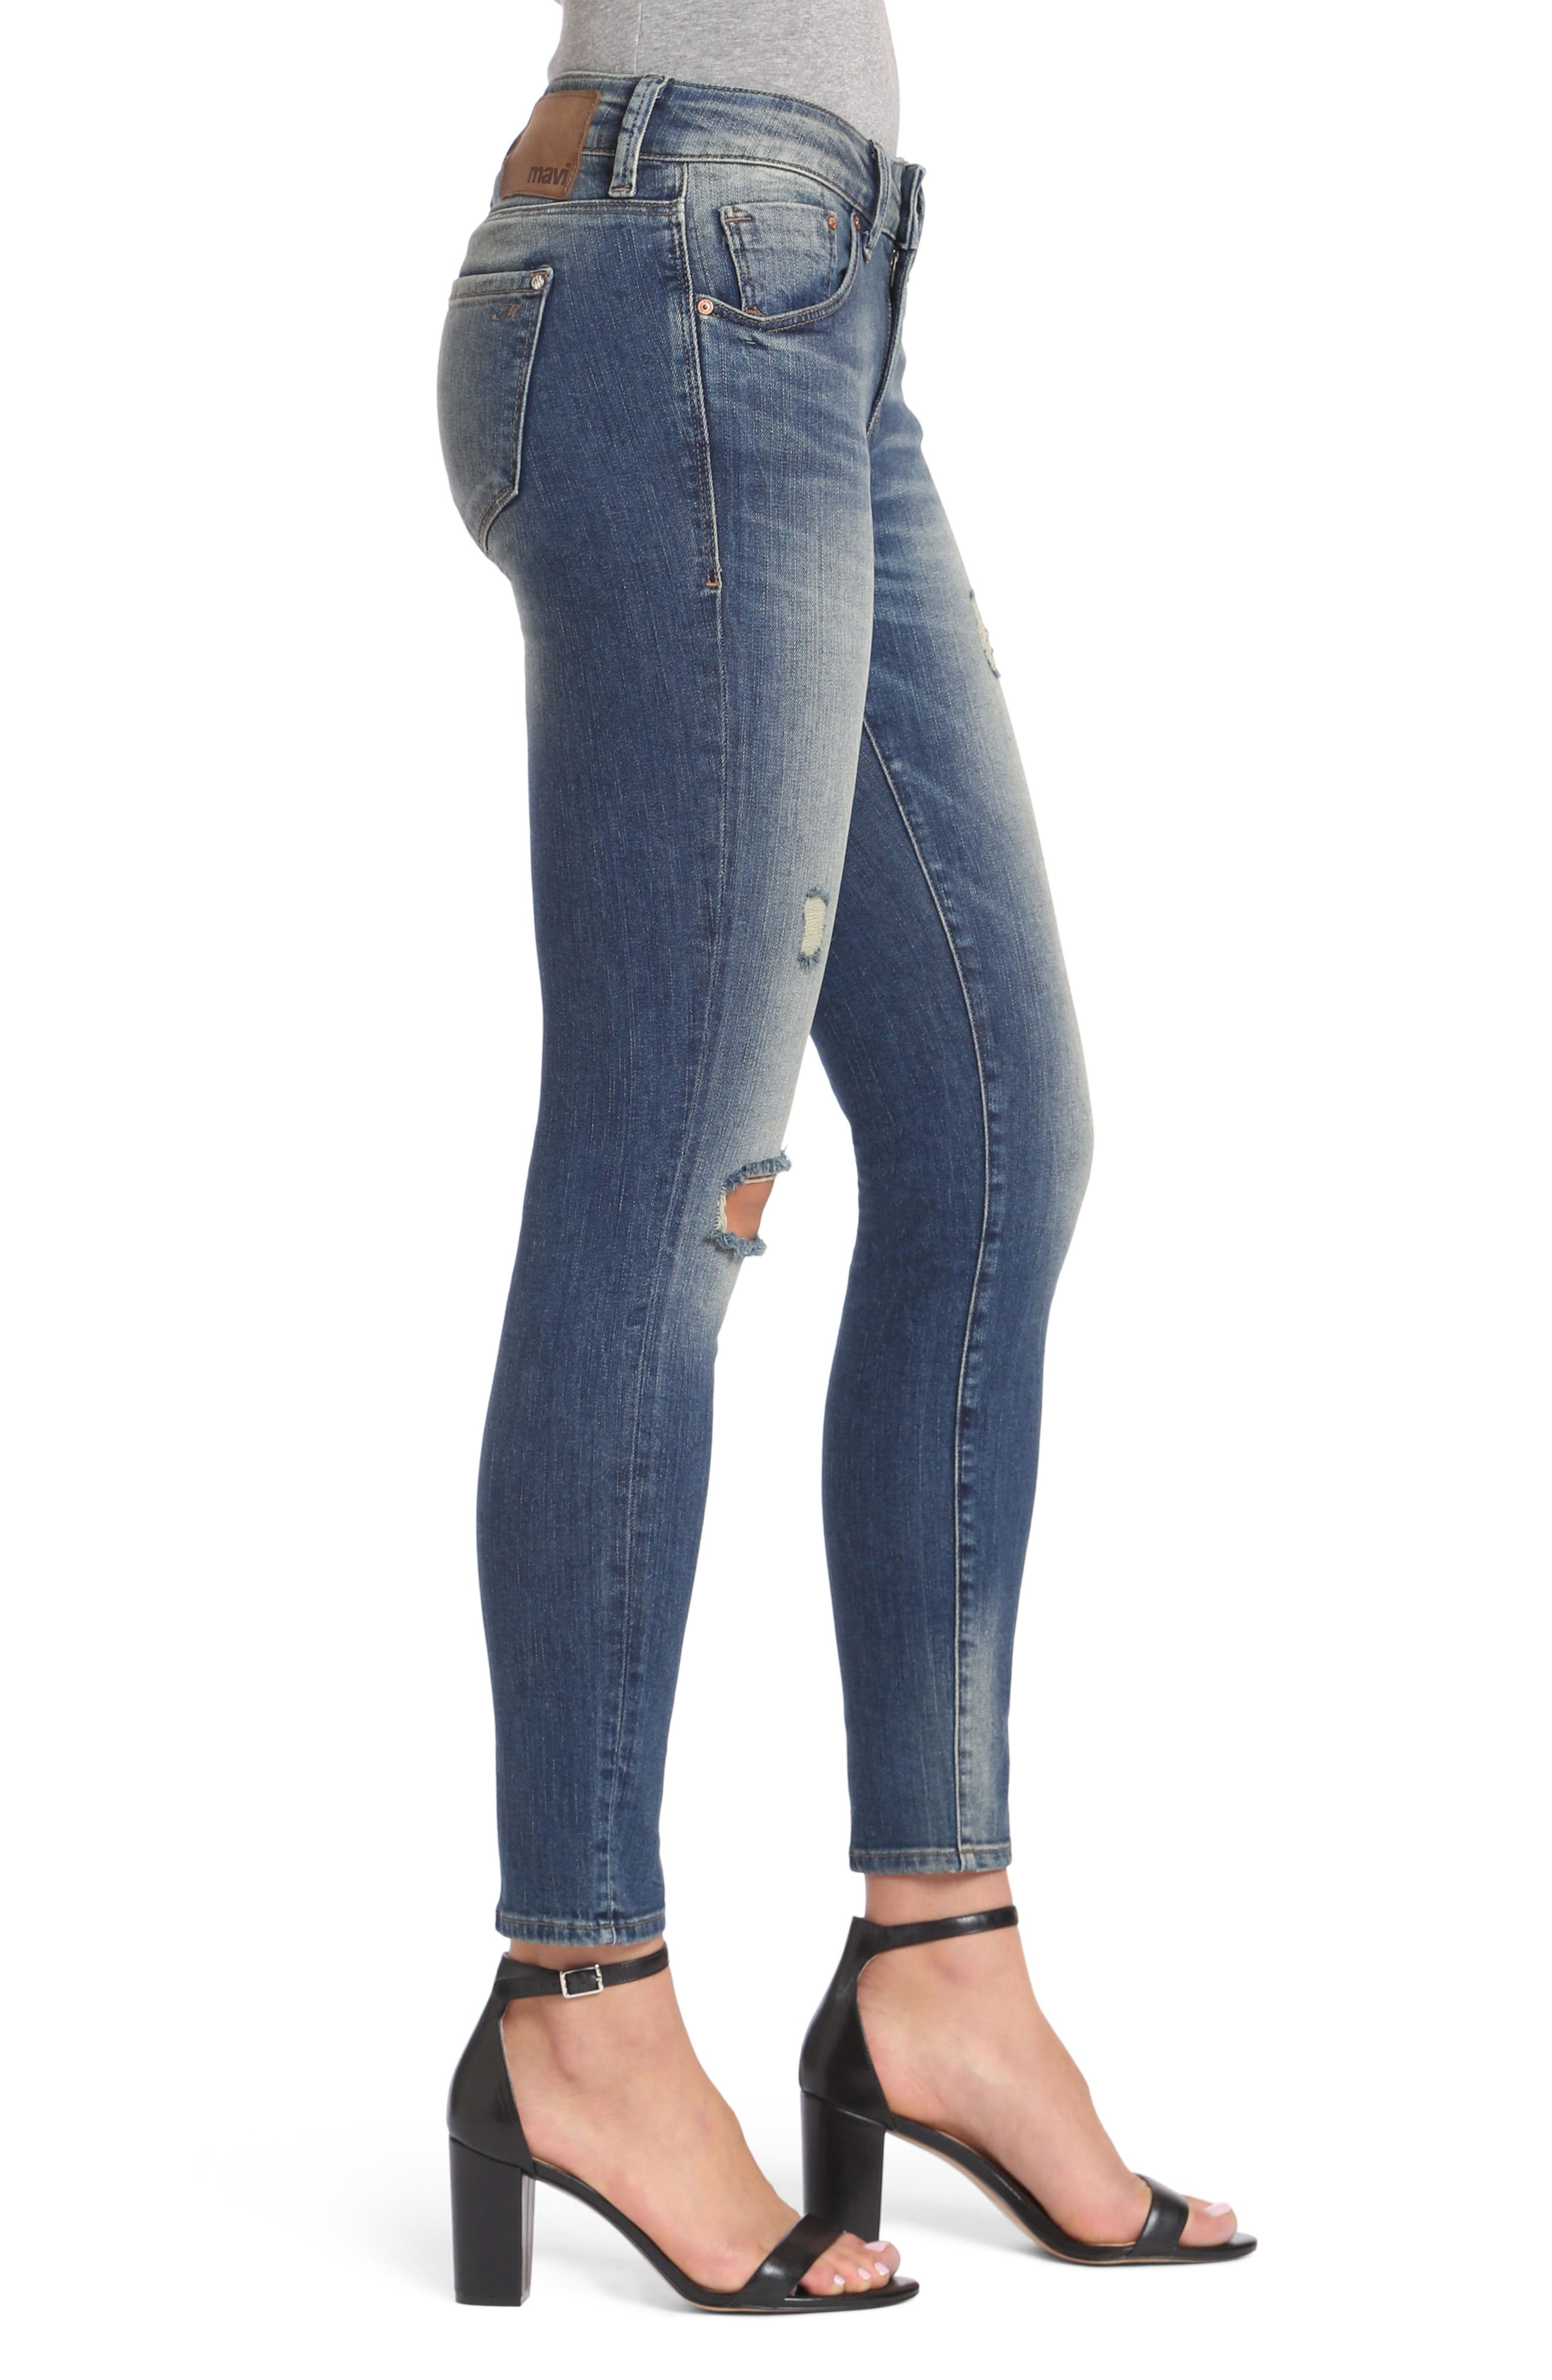 Adriana Stretch Skinny Jeans,                             Alternate thumbnail 3, color,                             Mid Shaded Glam Vintage